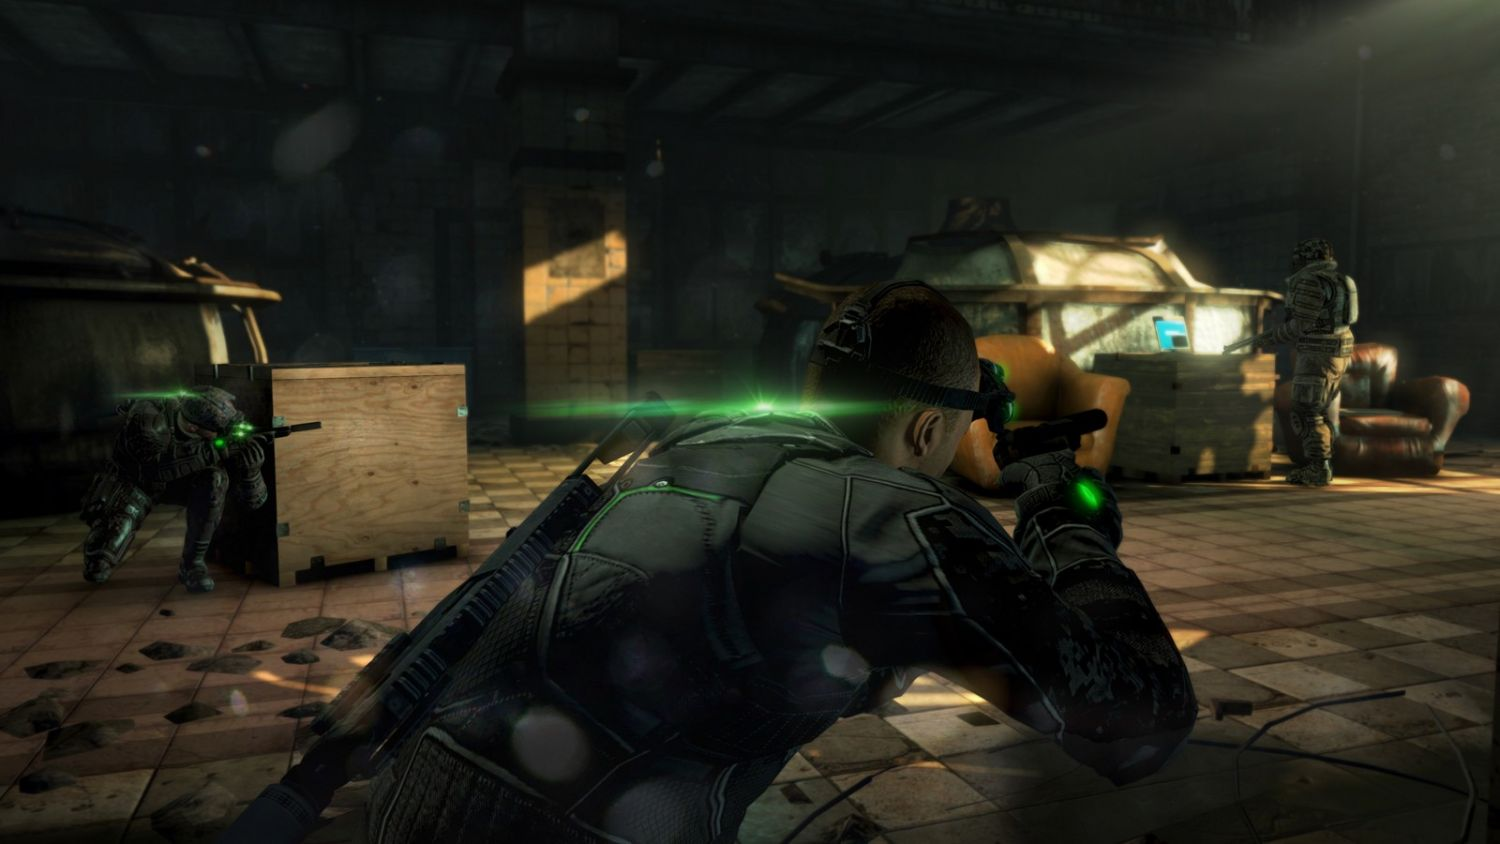 Screenshot: Splinter Cell Blacklist